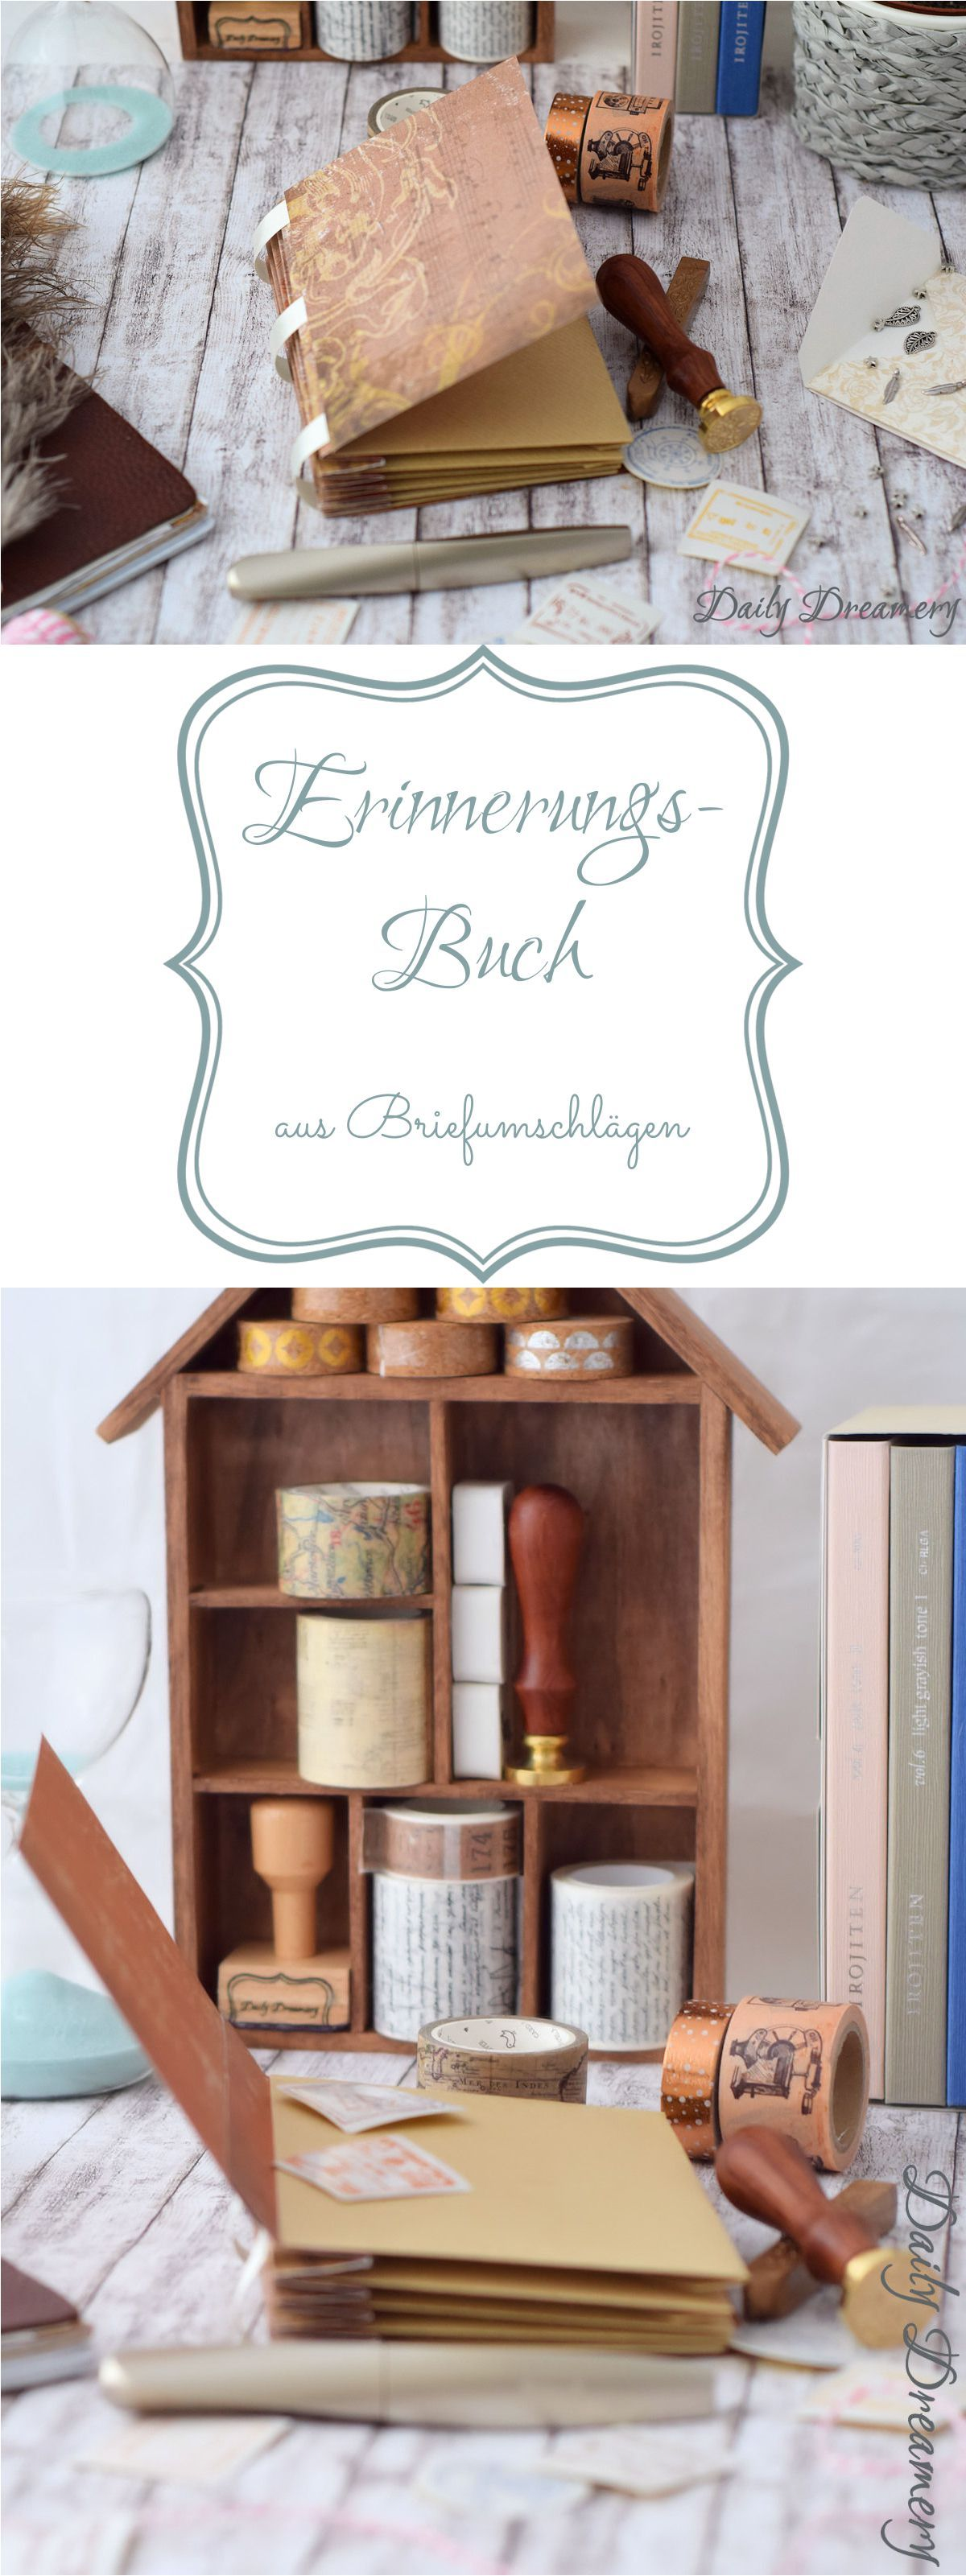 scrapbooking idee erinnerungsbuch aus briefumschl gen diy ideen auf deutsch pinterest. Black Bedroom Furniture Sets. Home Design Ideas